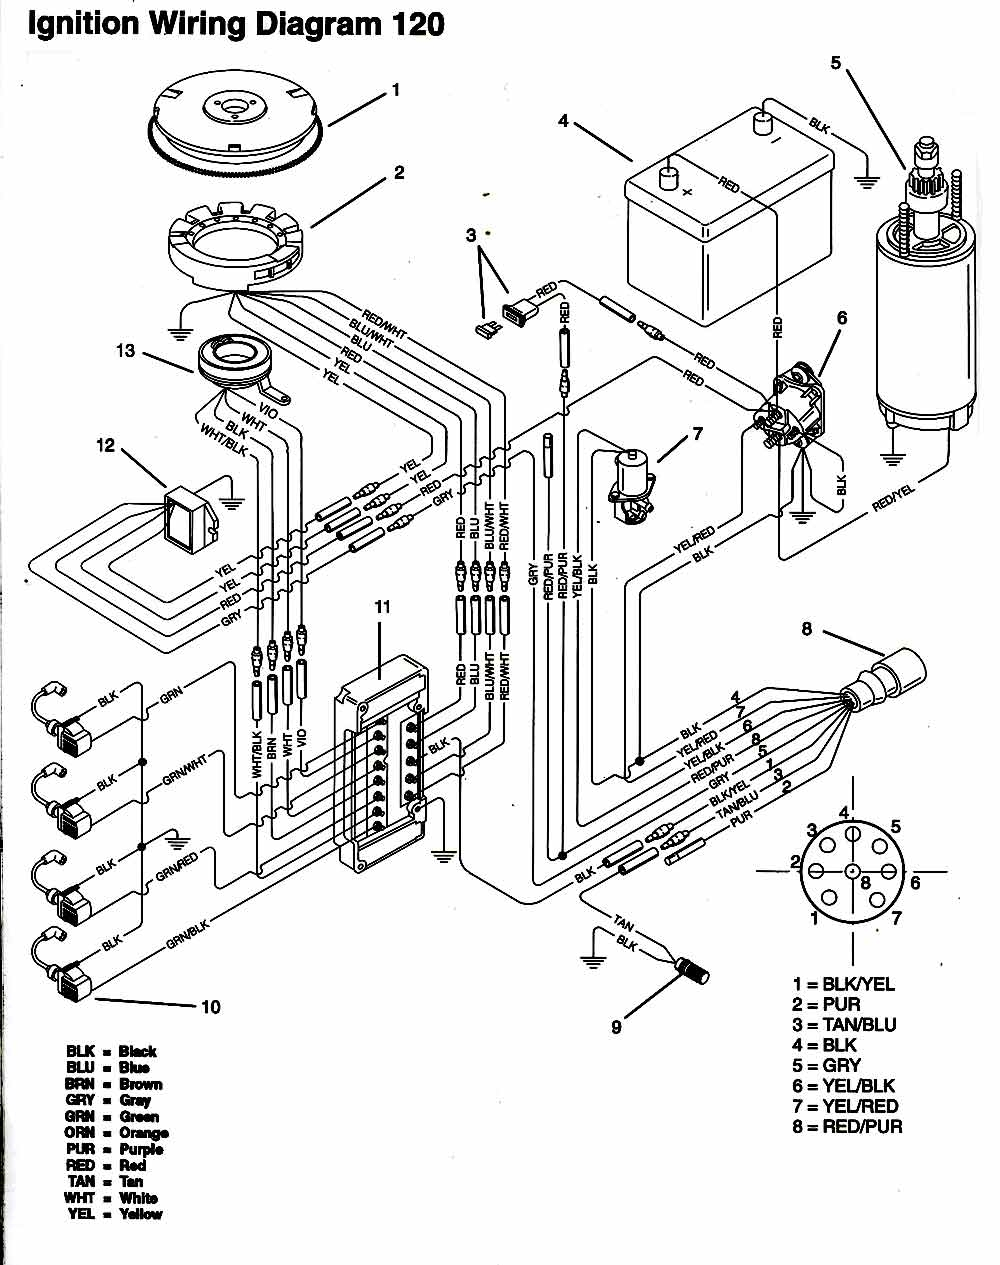 hight resolution of yamaha outboard wiring diagram pdf yamaha outboard wiring diagram unique tohatsu 30hp wiring diagram free